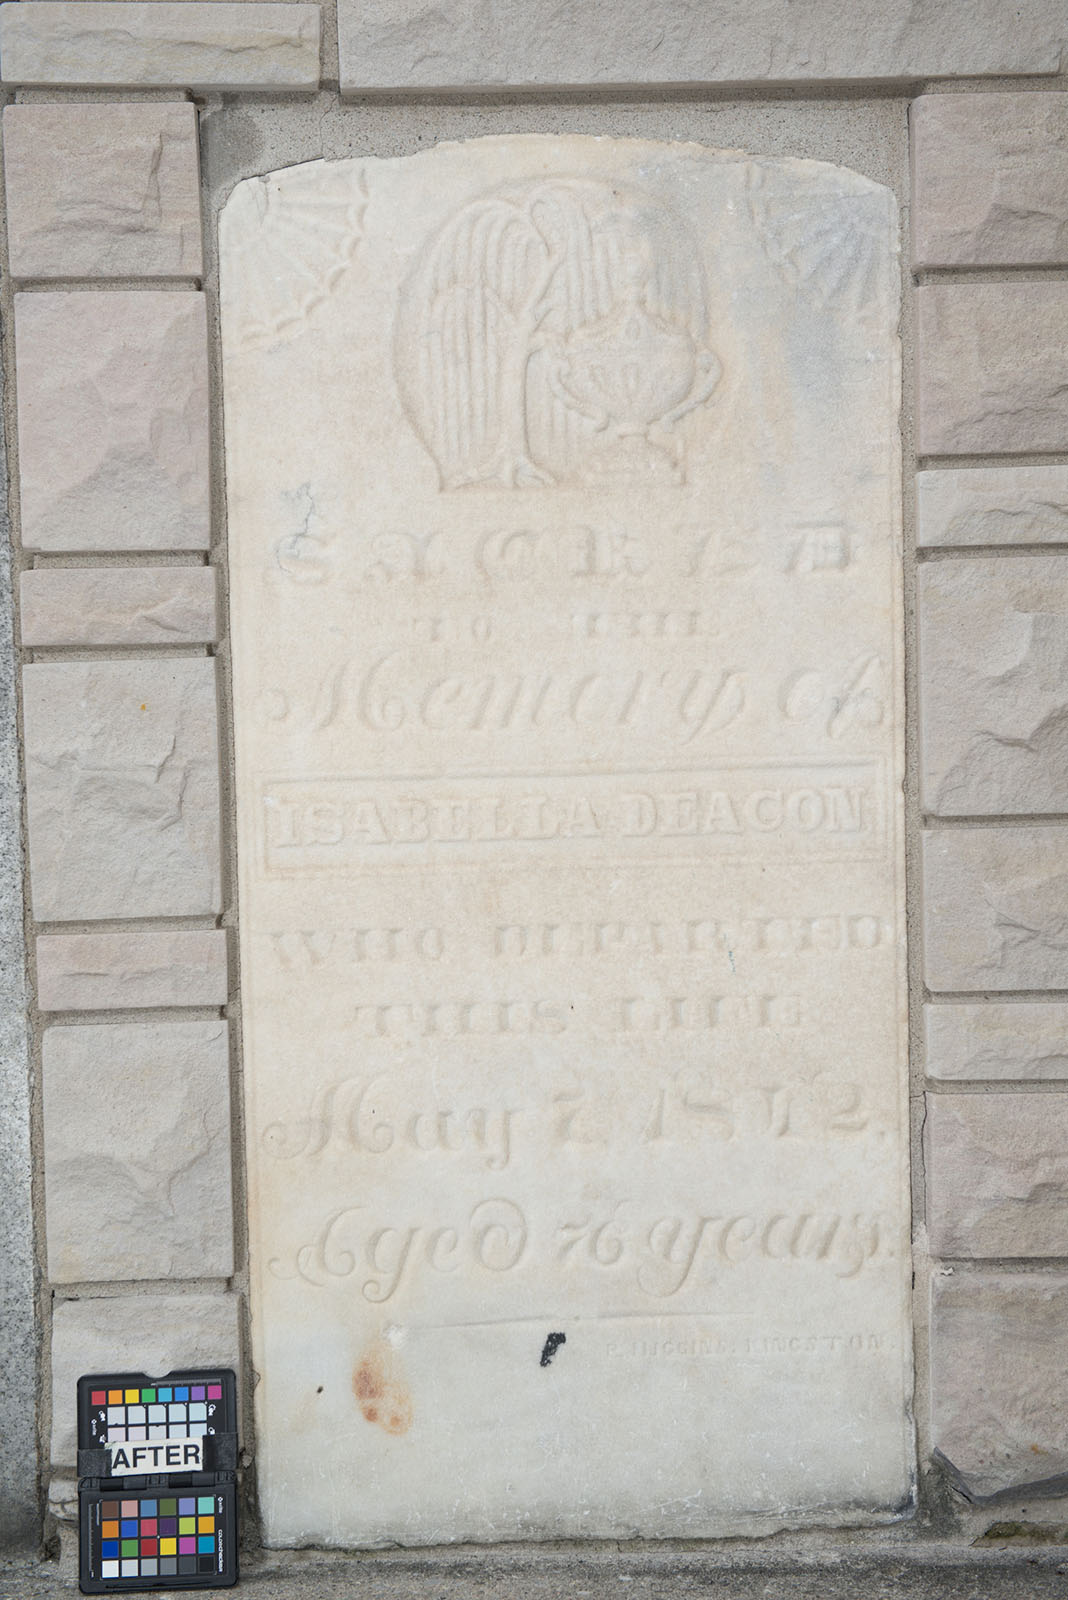 Stone for Isabella Deacon in Kingston's Lower Burial Ground